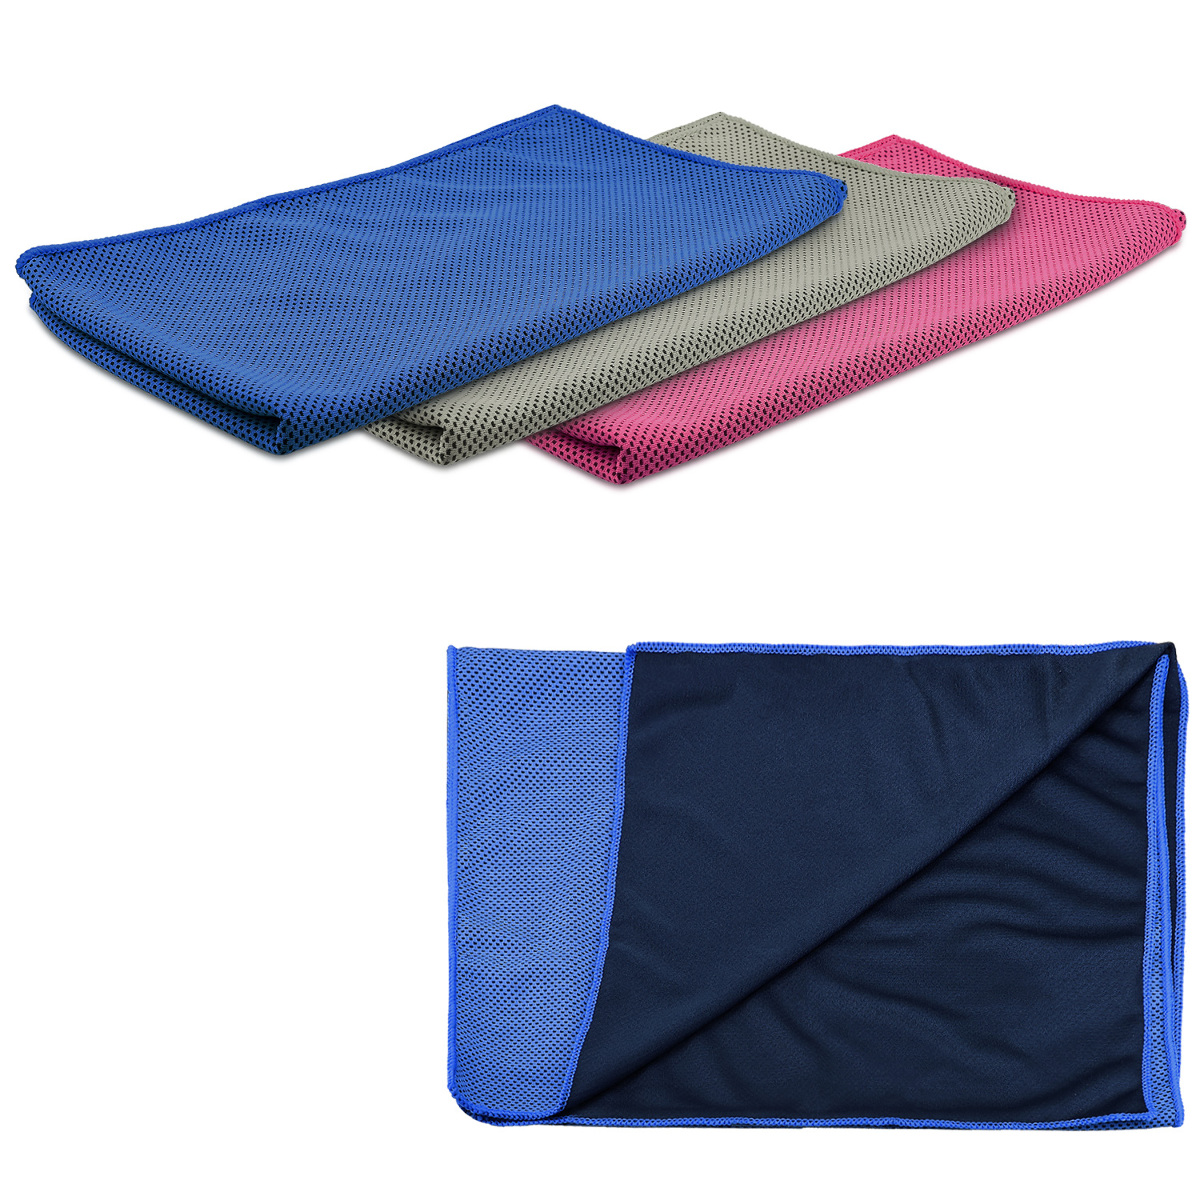 Sports Gym Towel: Cooling Fitness Towel Made Of Microfibre Sport Cloth